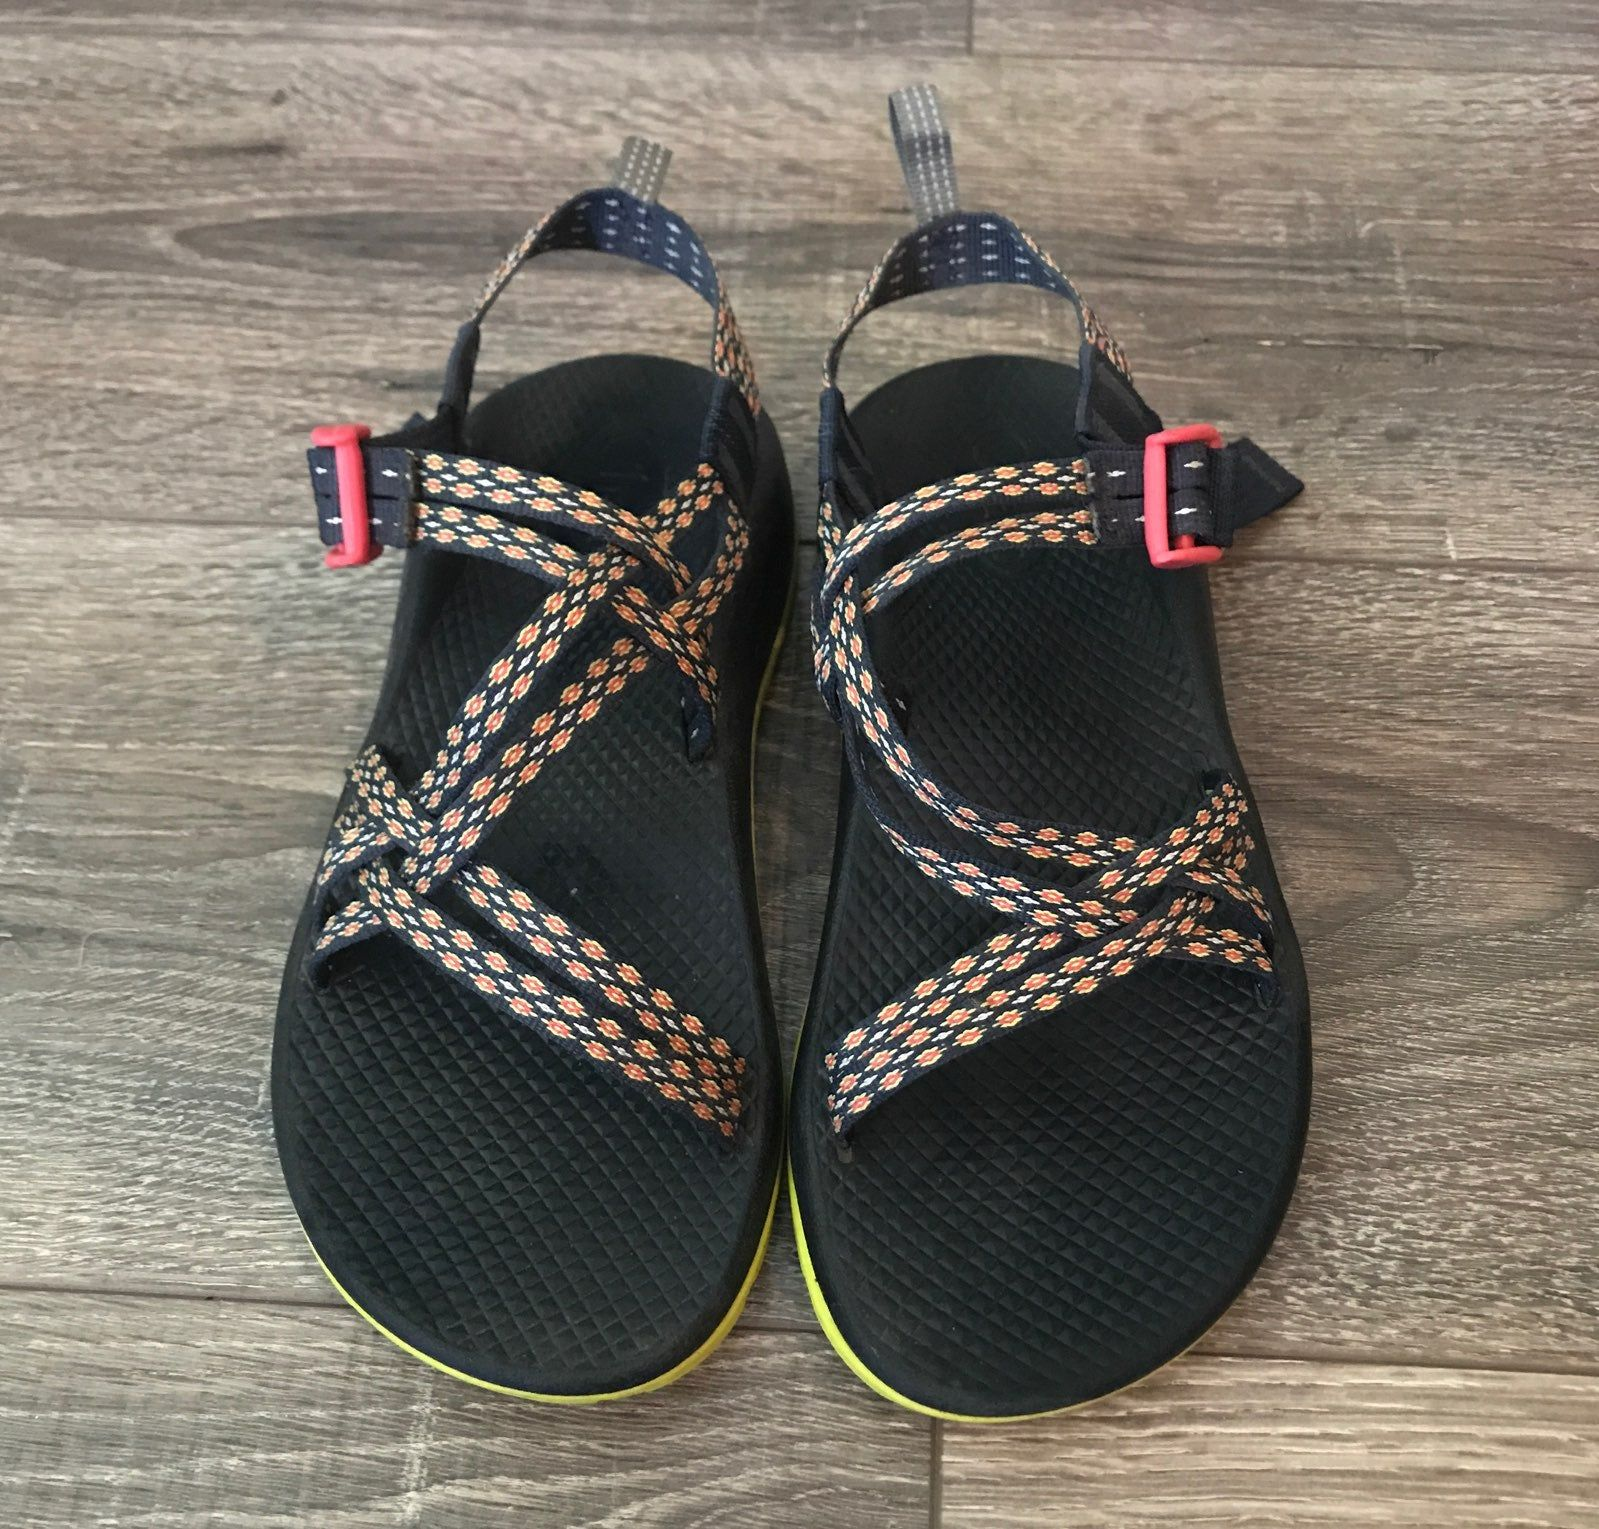 Like New Chacos Size 5 In Kids Fits Like A 7 In Women S Womens Chacos Chacos Women